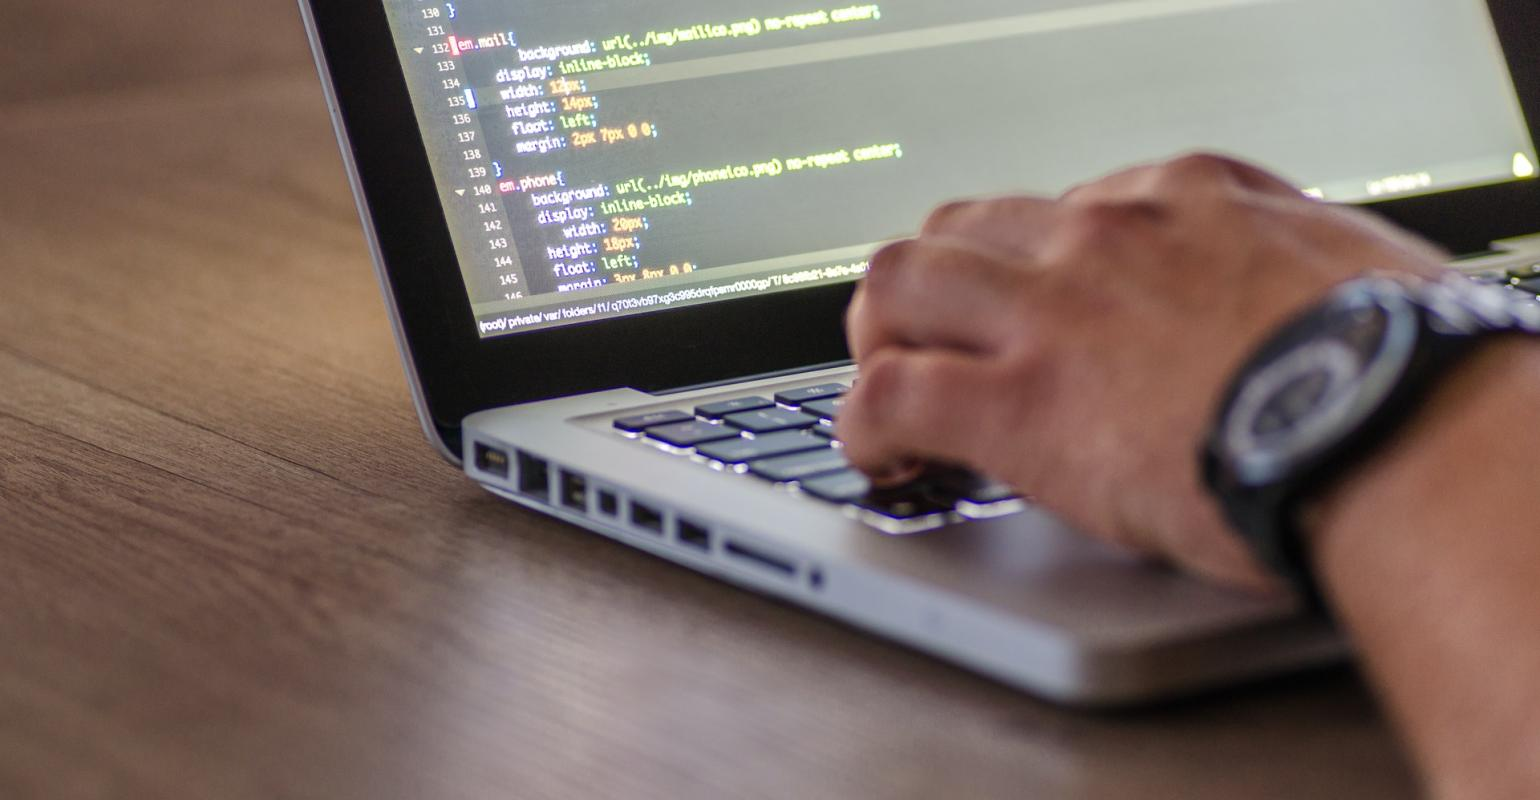 Red Hat Offers Certification Exams Online in Response to COVID-19 | IT Pro